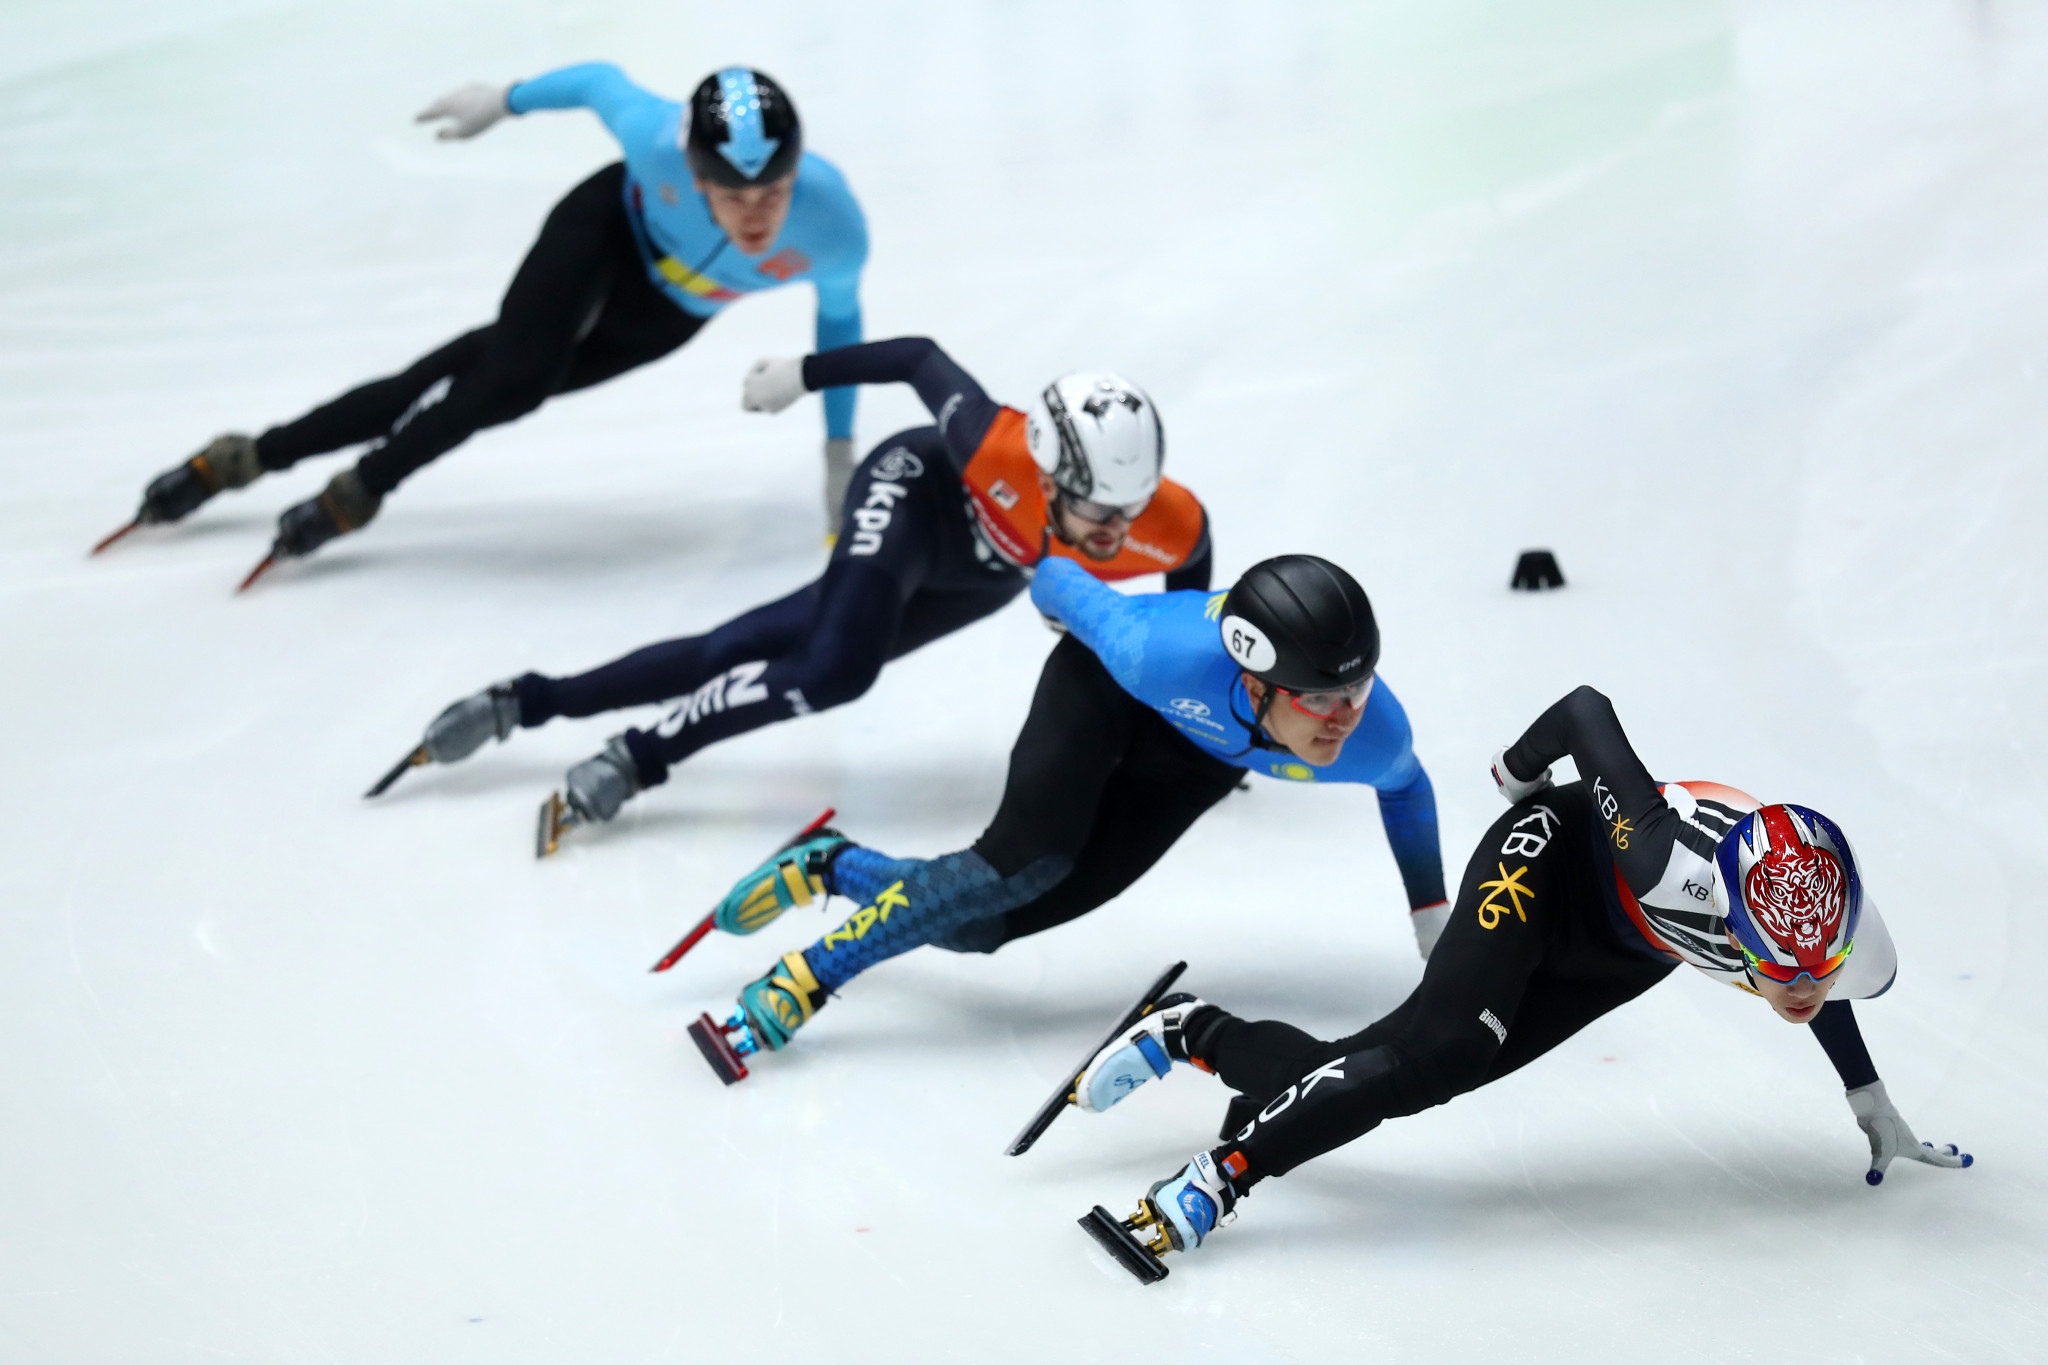 ISU reveal World Short Track Speed Skating Championships may take place next season